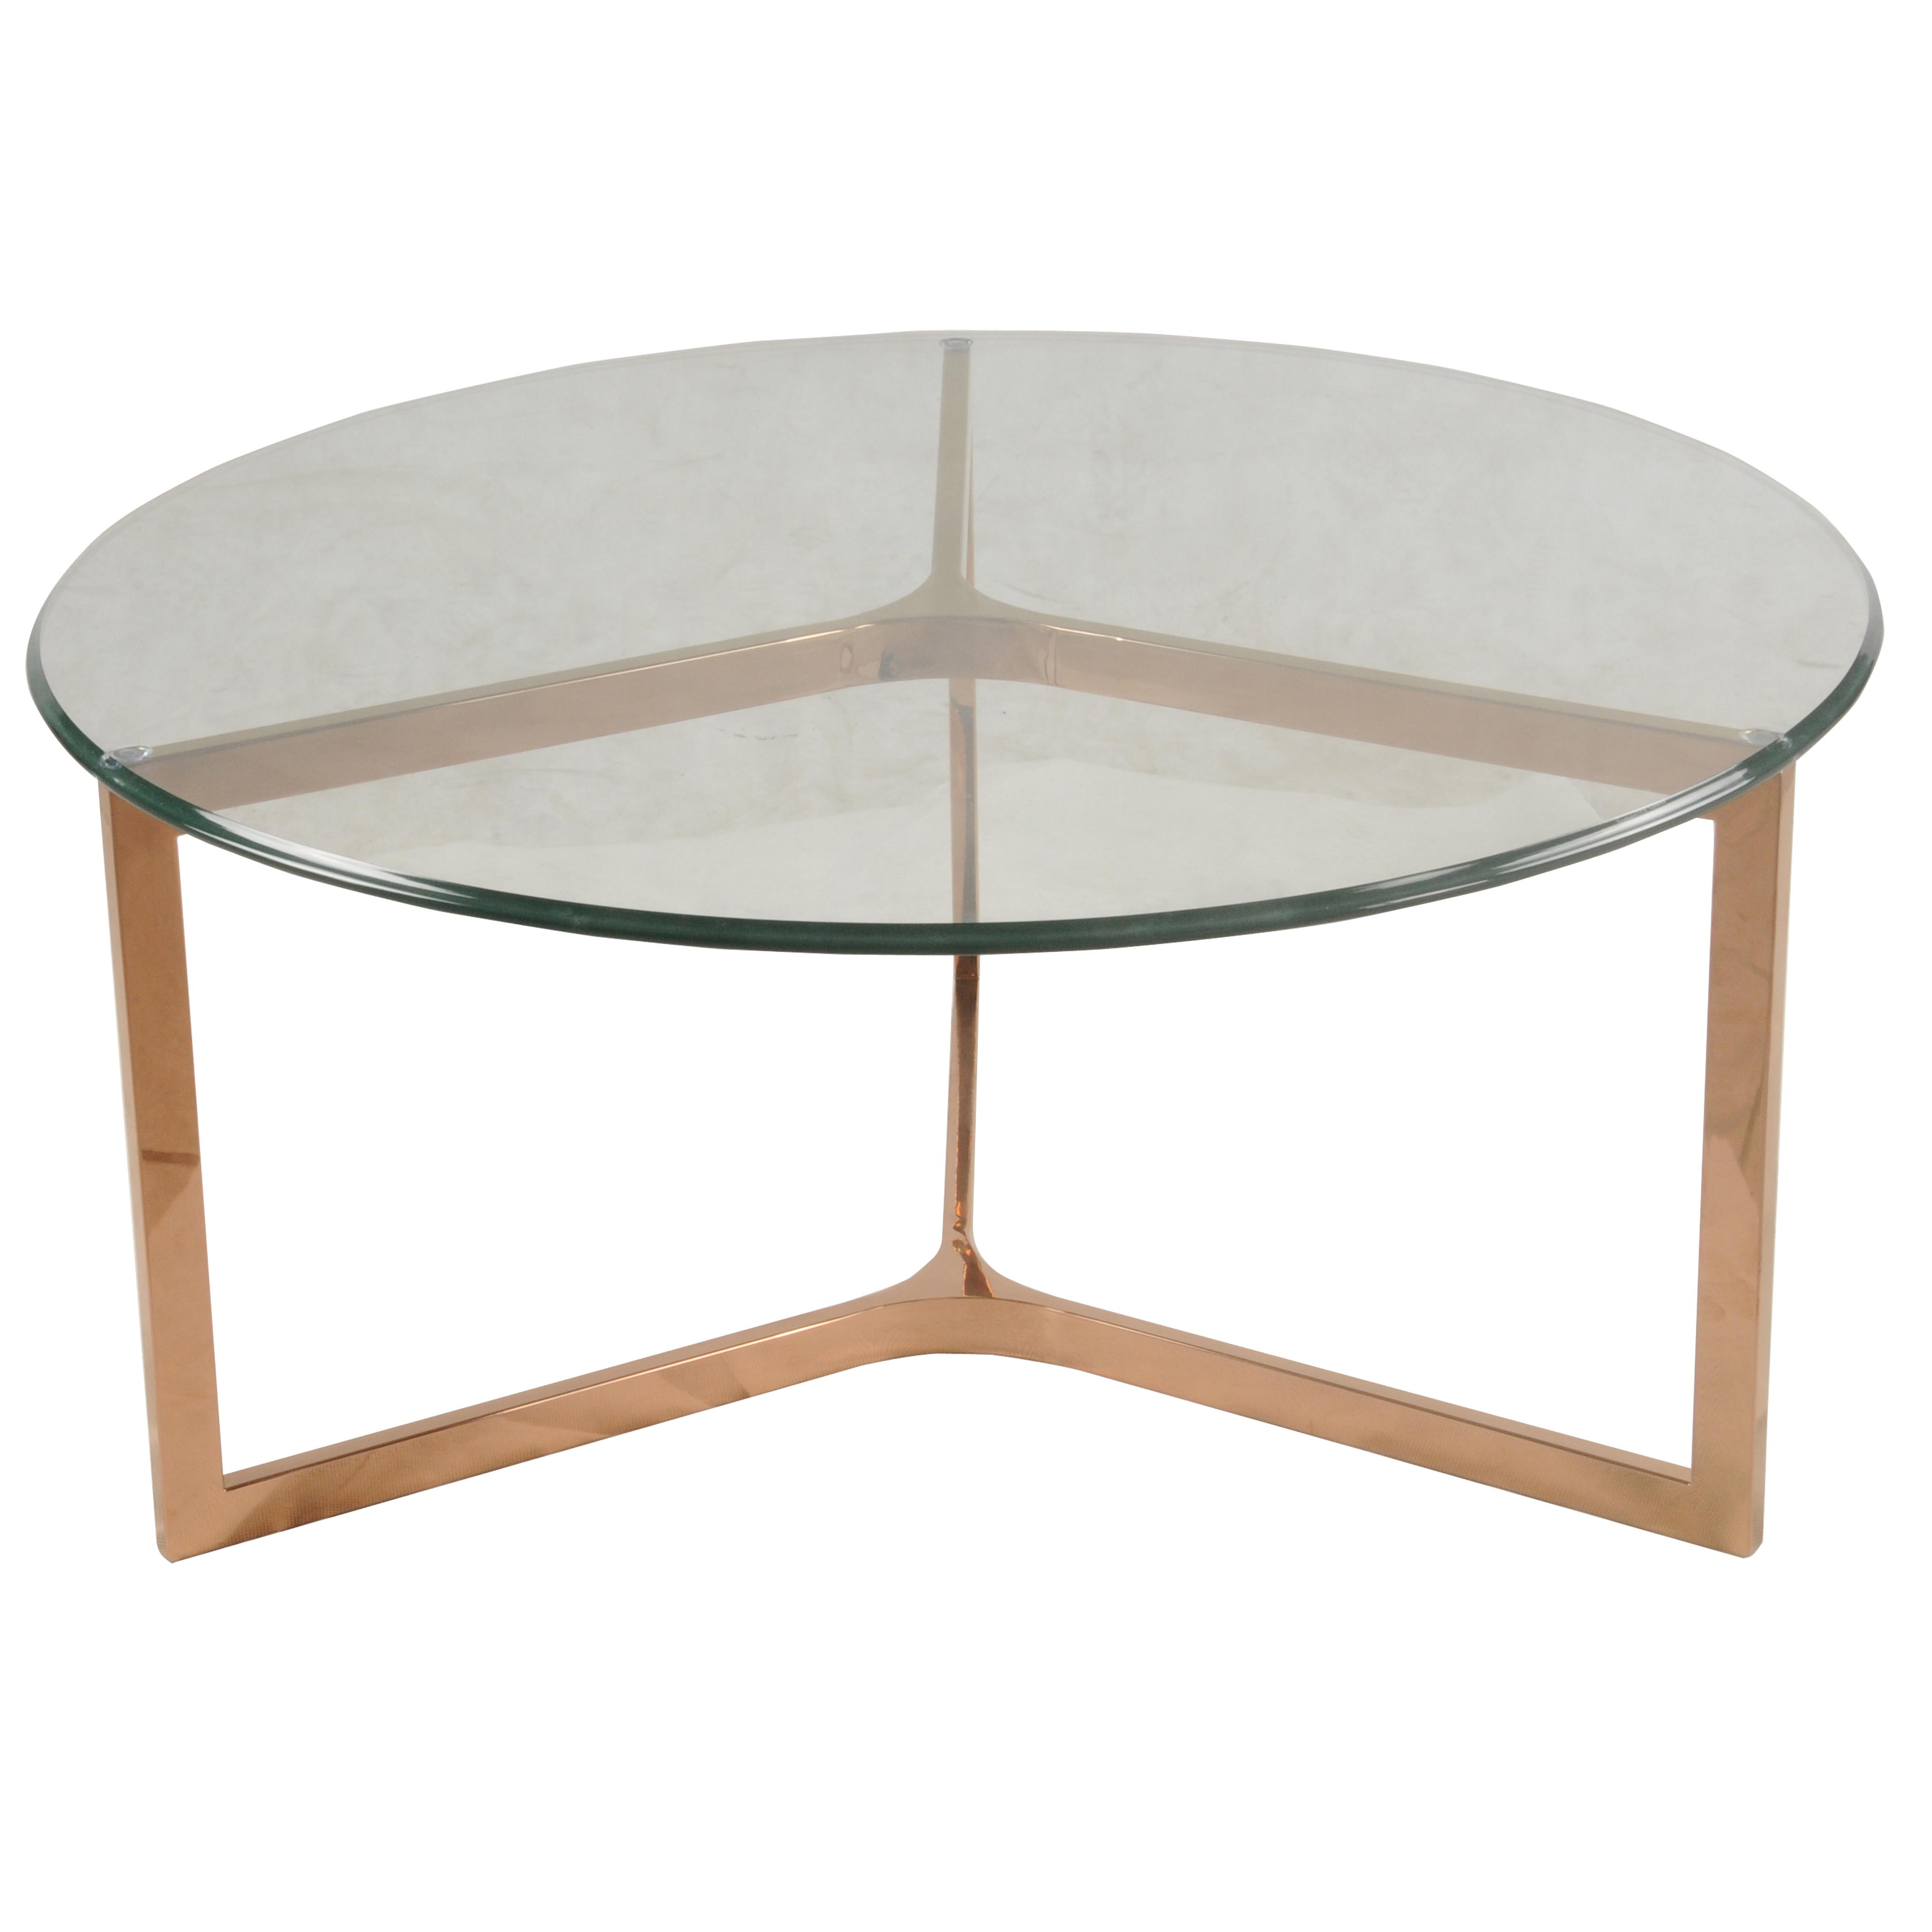 Monza round coffee table glass top rose gold boulevard for Rose gold round coffee table